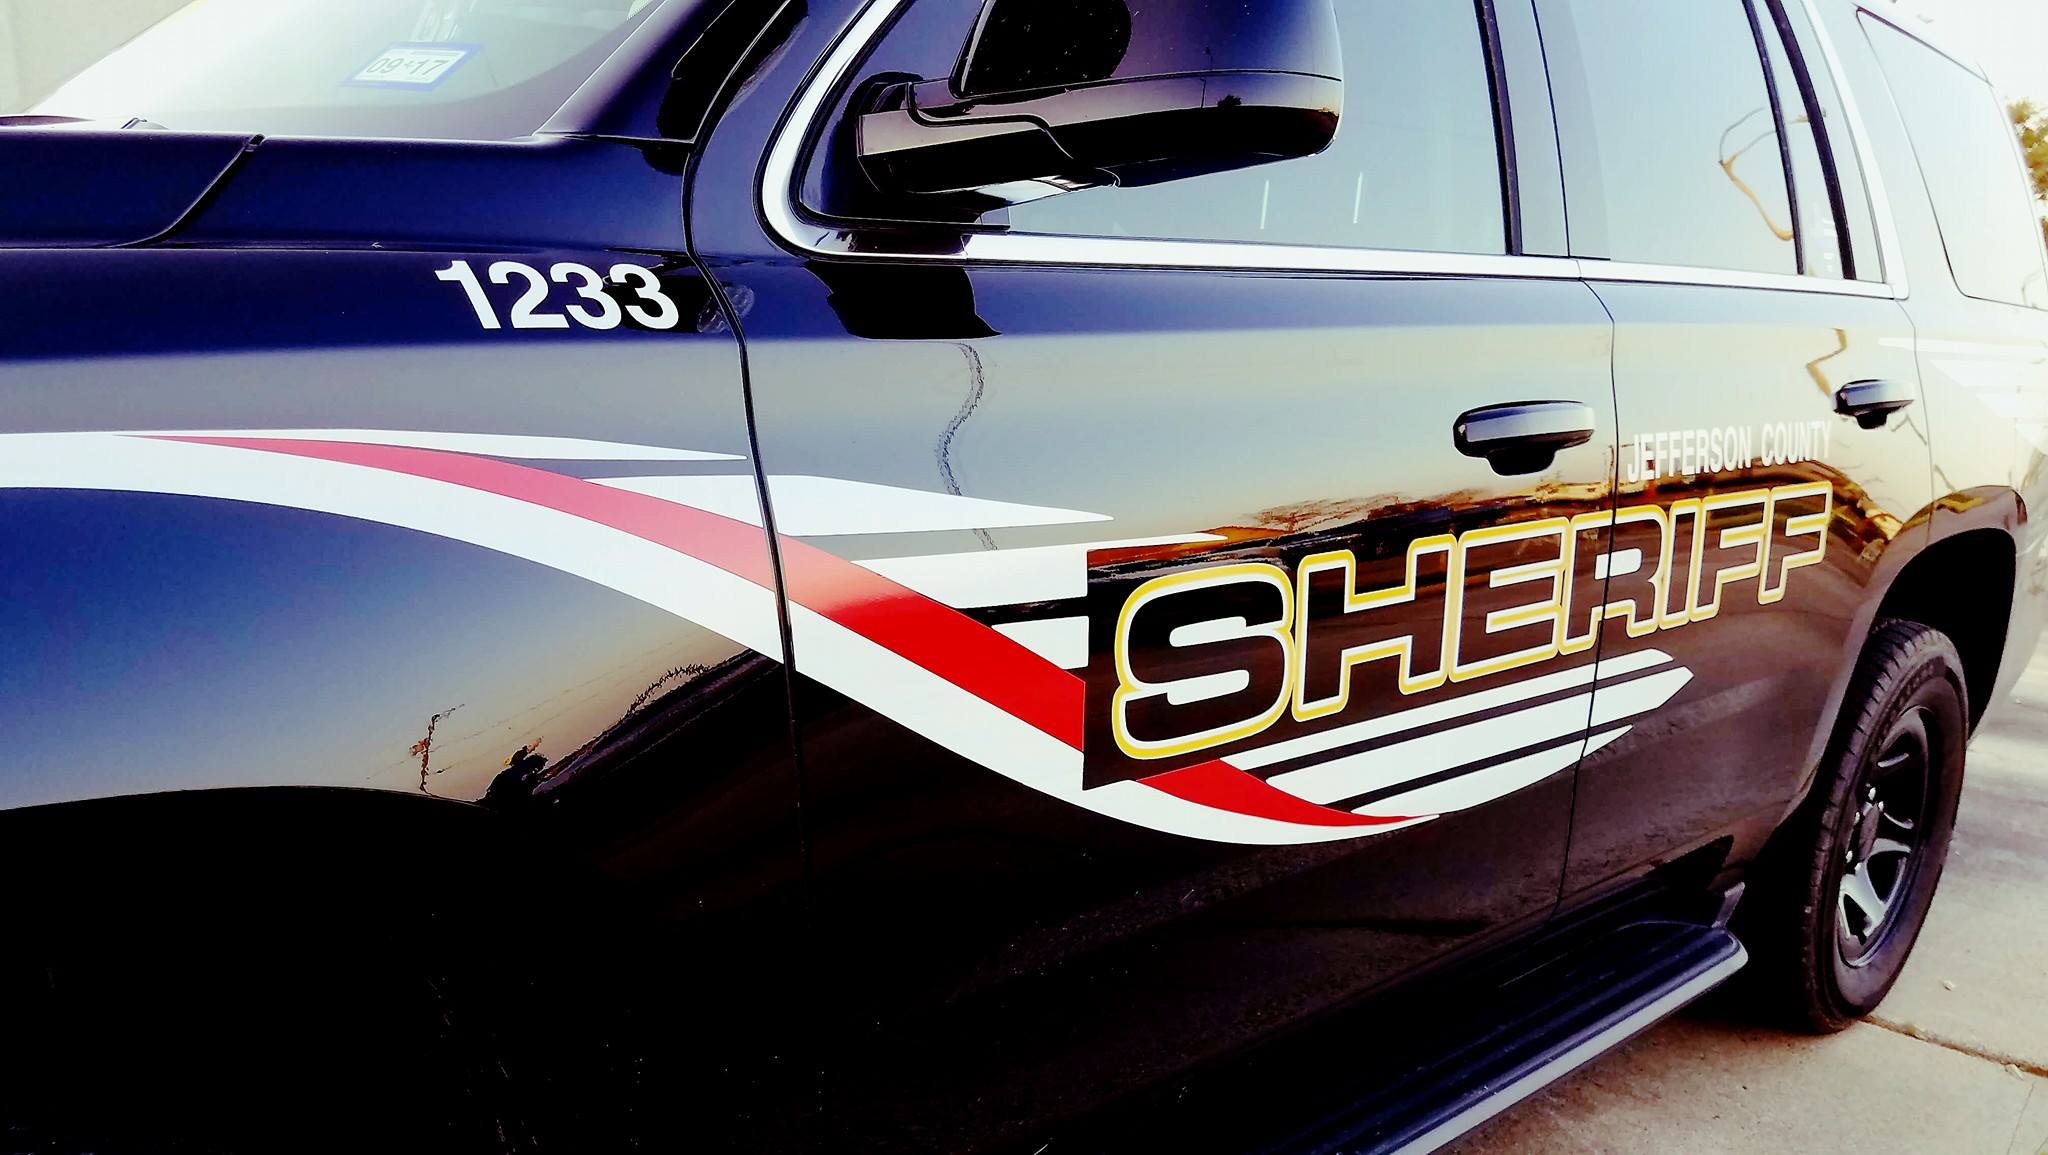 Close up shot of Jefferson County Sheriff's road patrol SUV style vehicle.